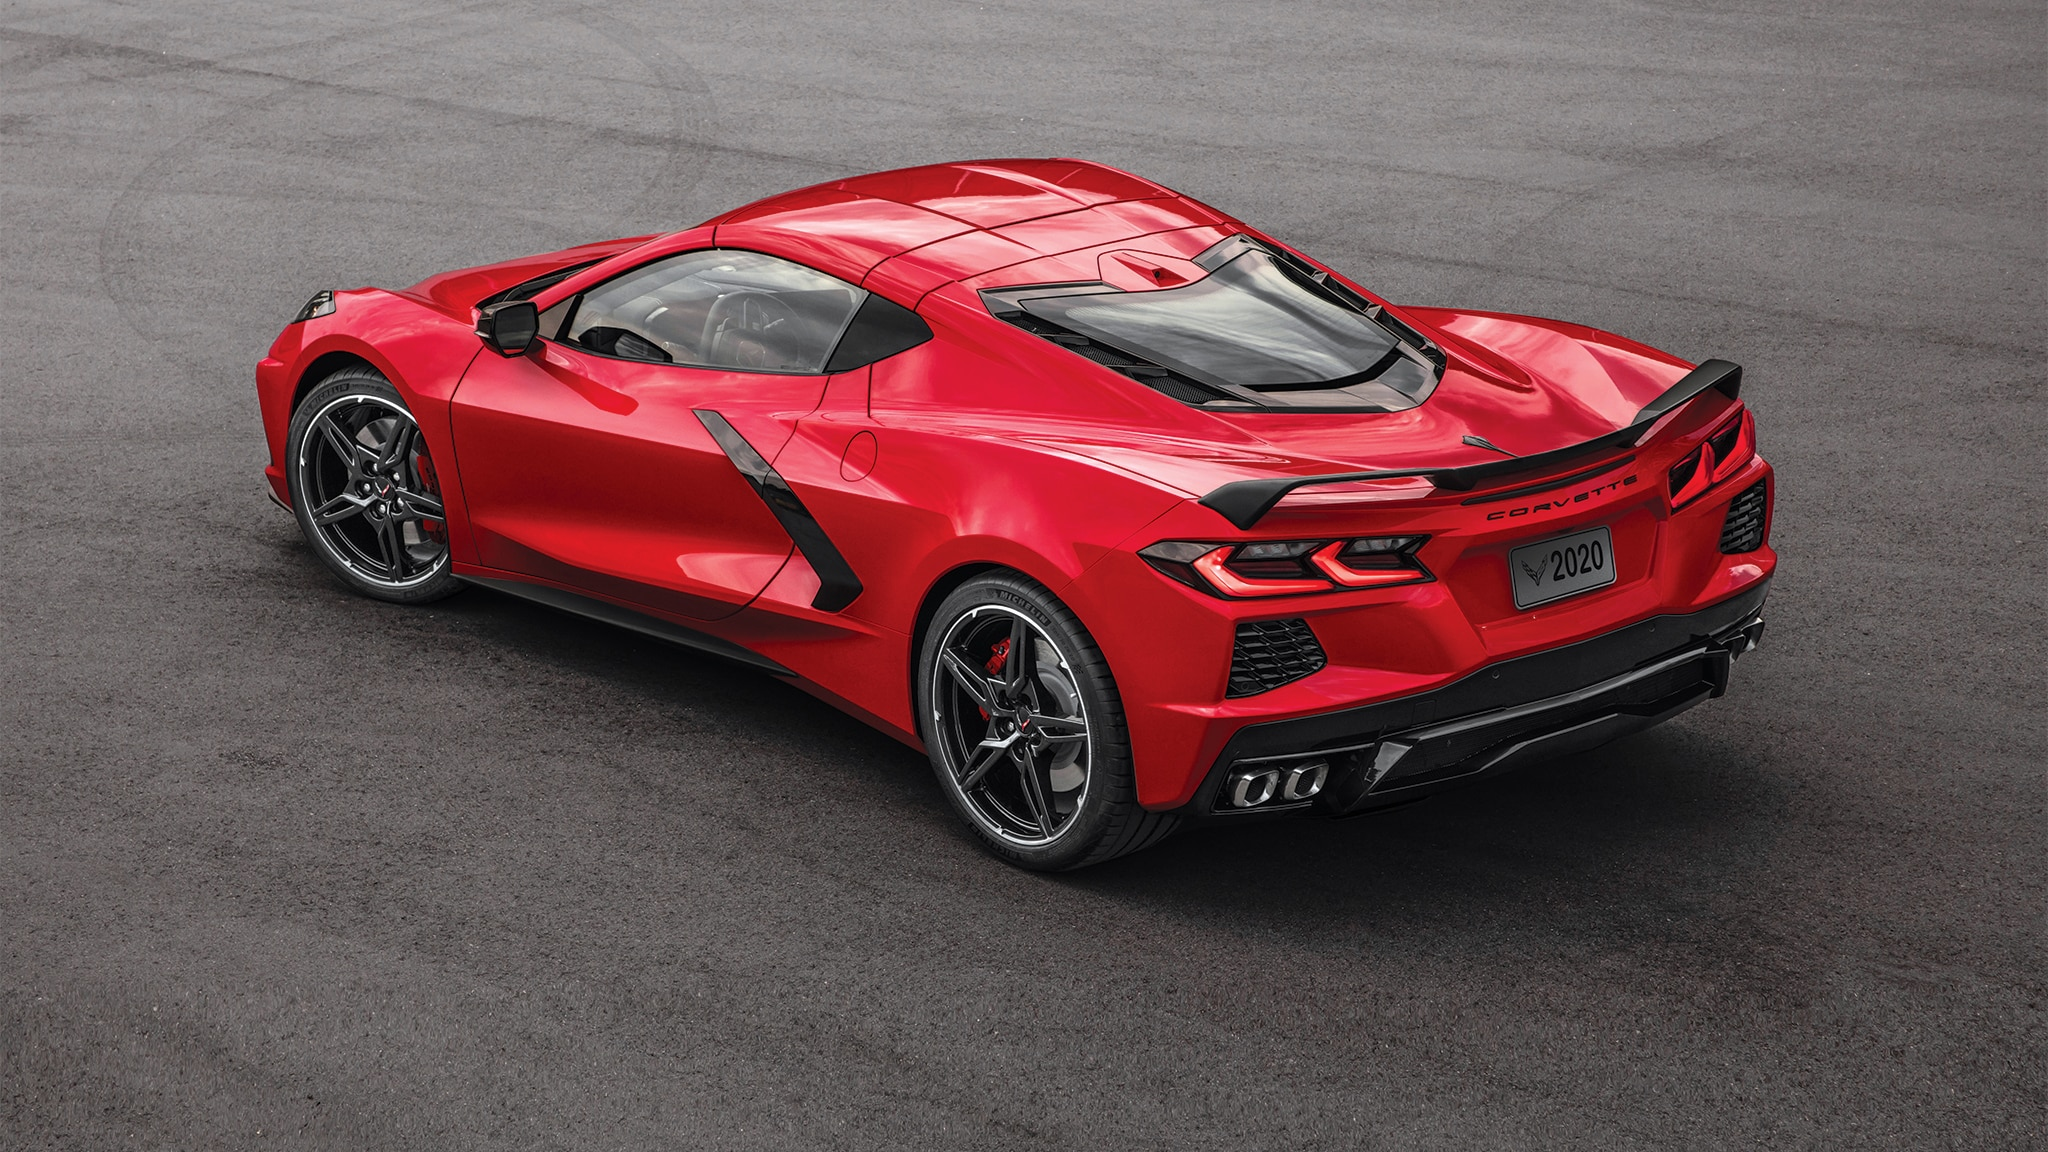 73 A 2020 Chevy Corvette Stingray Configurations